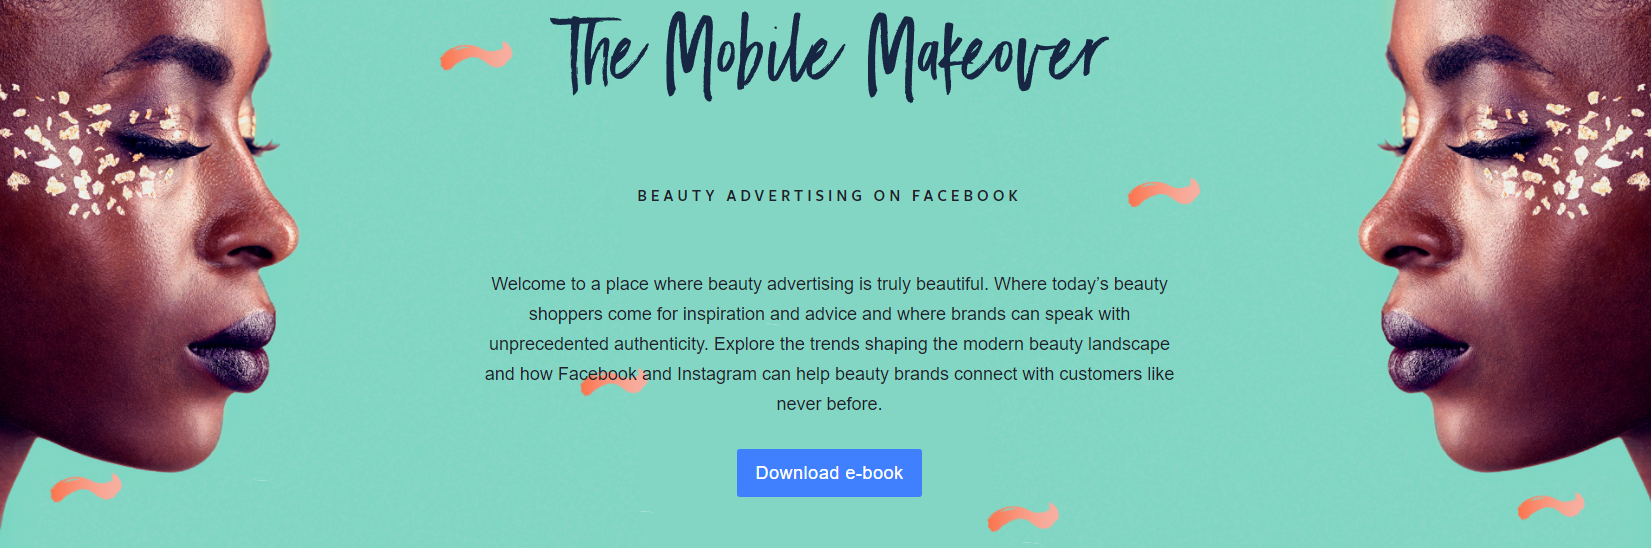 Facebook Releases New Report on Beauty Industry Trends and the Evolution of Social Discovery | Social Media Today